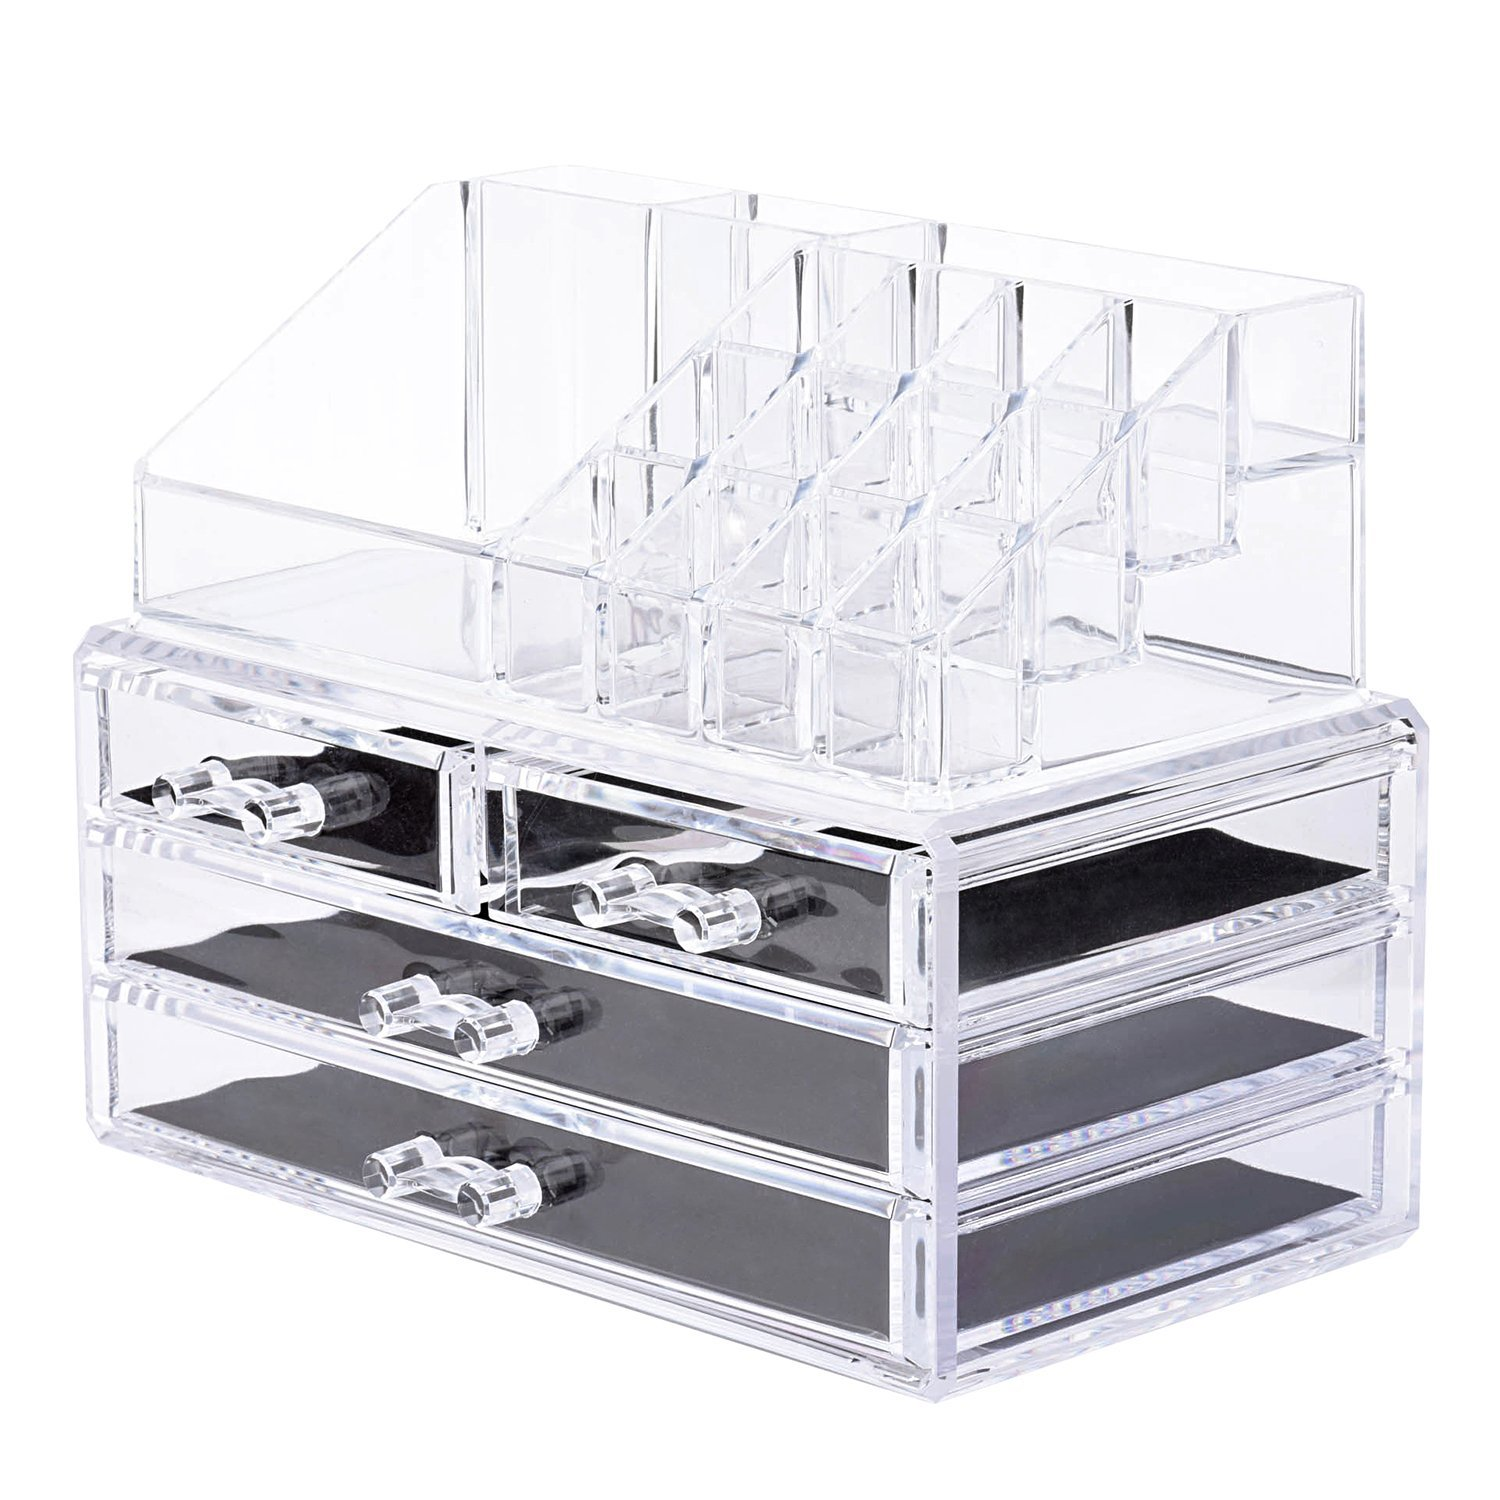 Makeup Storage Organizer Sale $14.99  Free Shipping from Amazon